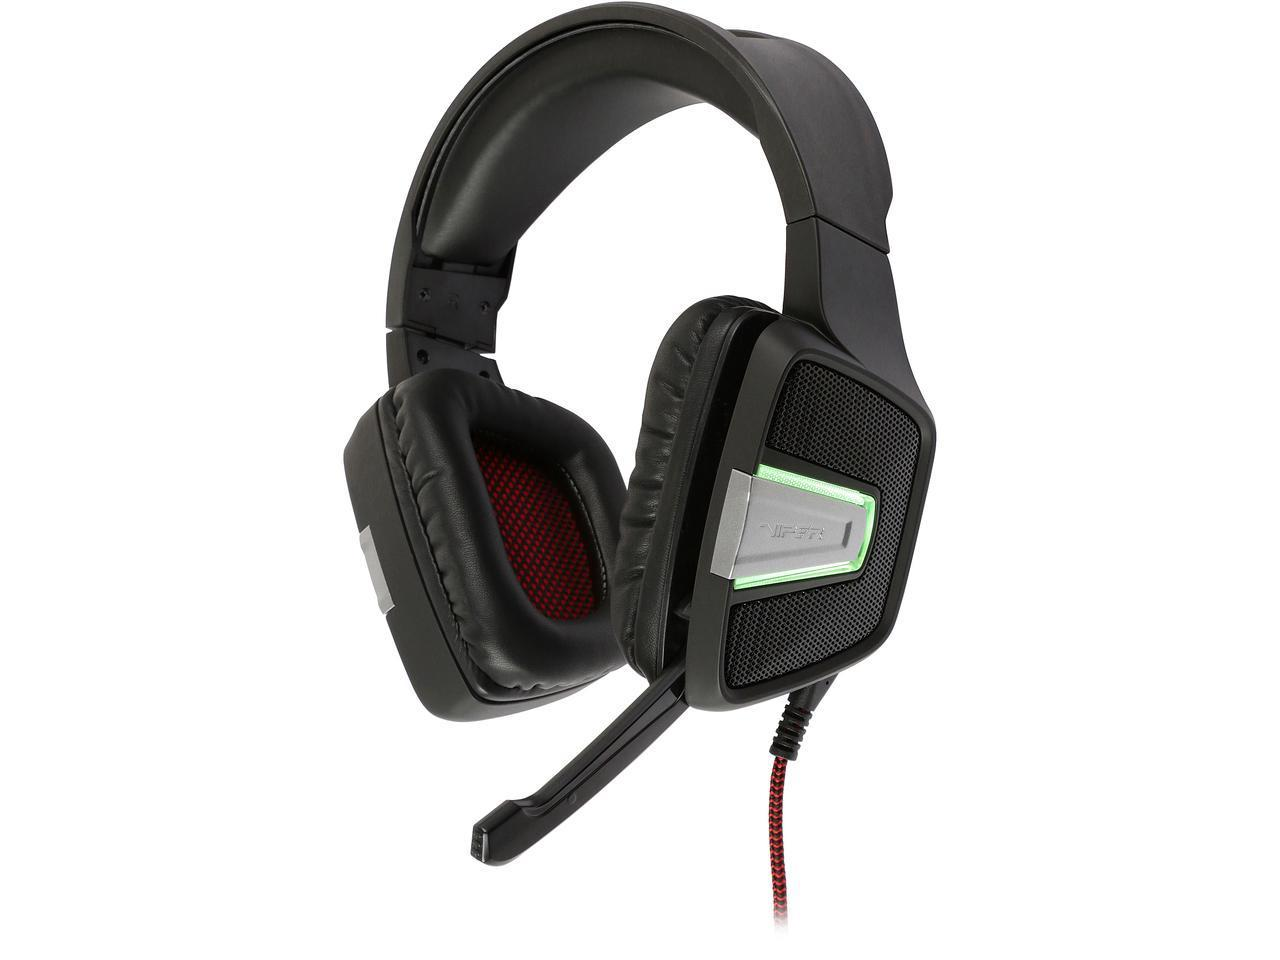 Patriot Viper Gaming V370 High Definition 7.1 Virtual Surround Gaming Headset Full RGB Colors